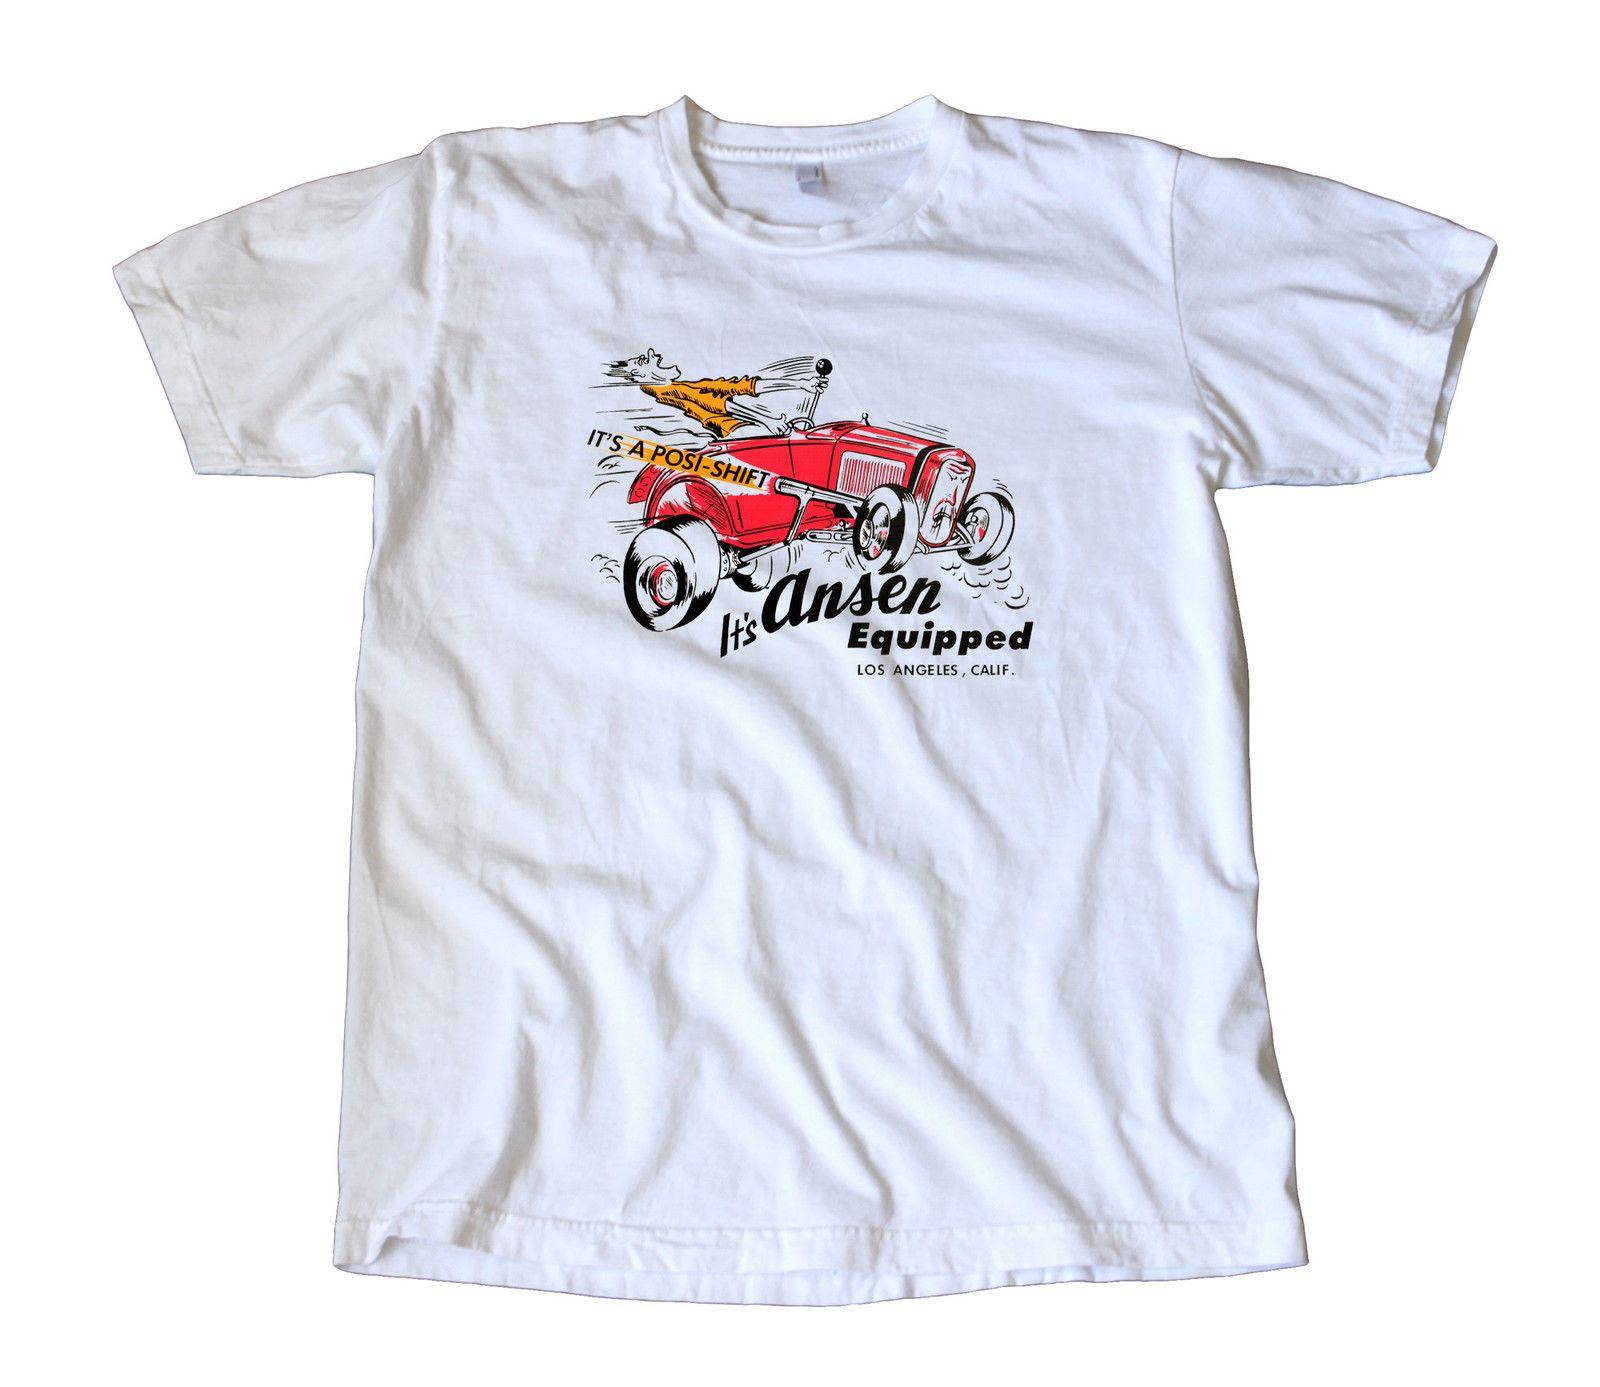 193a68f15e Vintage Ansen Equipped Decal T-Shirt - Hot Rod, Gasser, Los Angeles Speed  Shop Funny free shipping Unisex Tshirt top